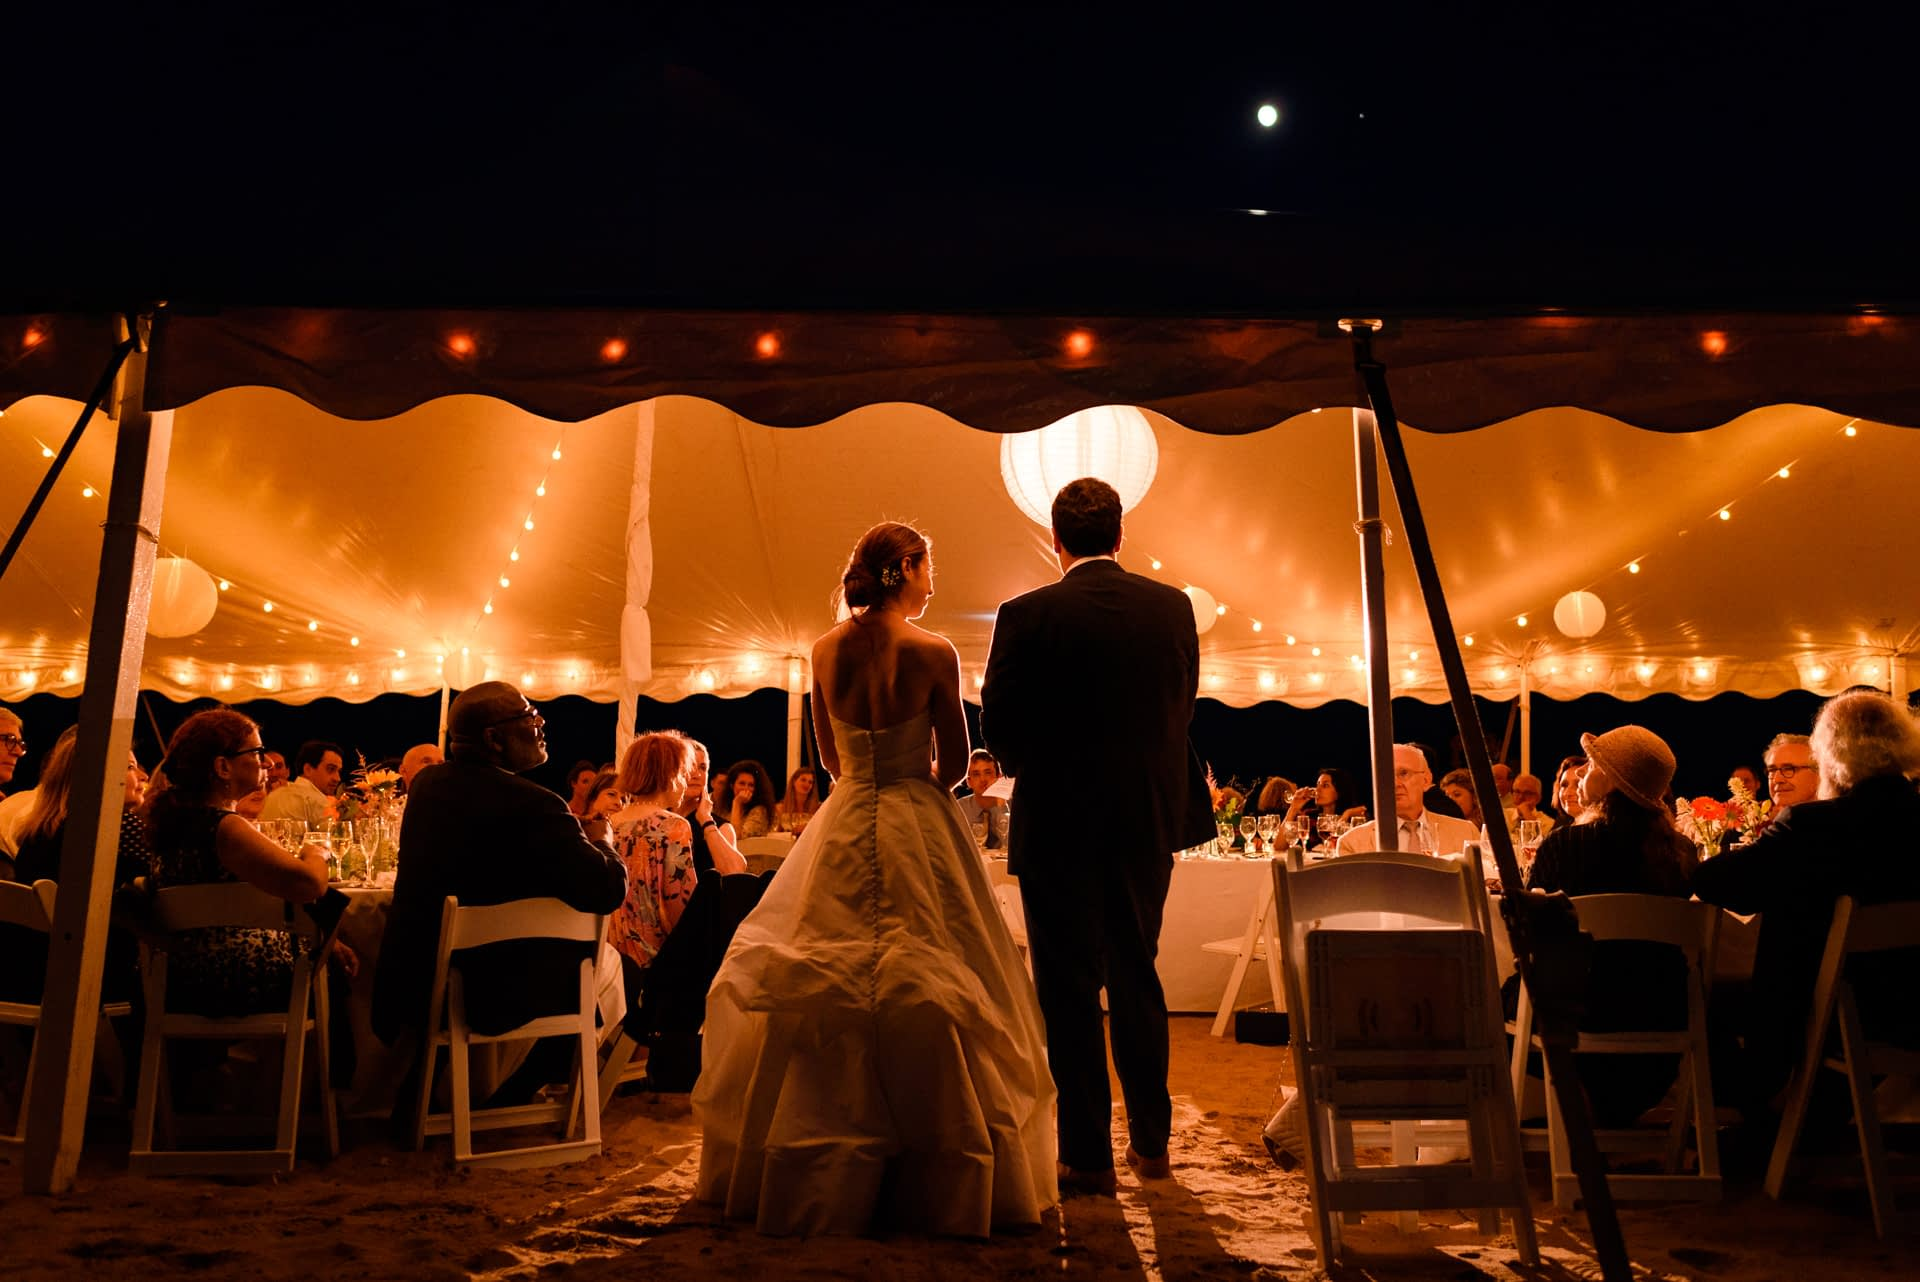 Wedding couple speaking to their guests under the warm glowing lights of a marquee tent on the beach